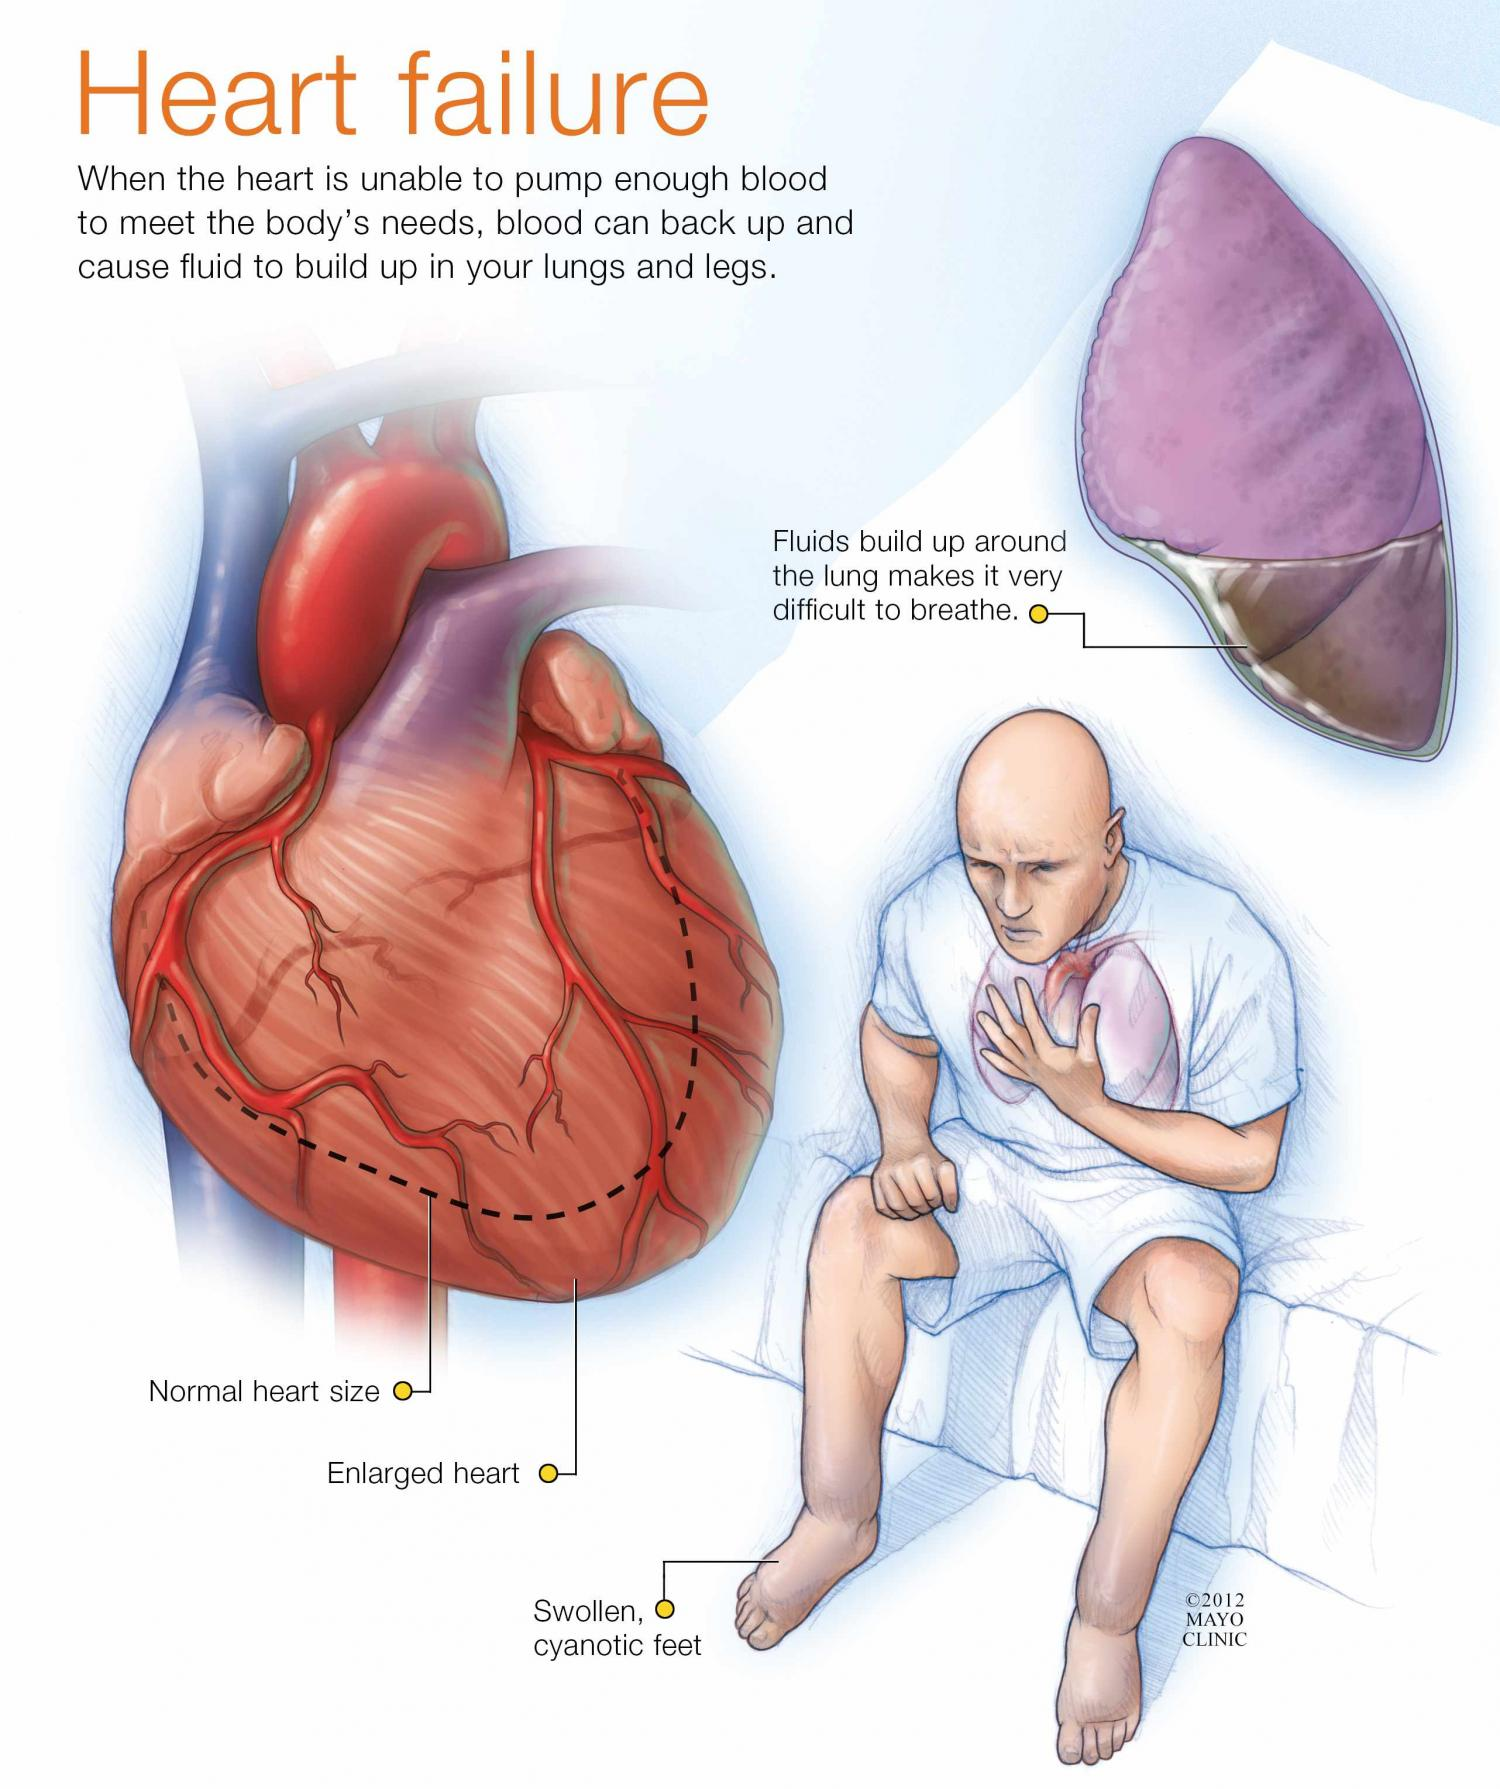 Common Medication For Heart Failure Patients Does Not